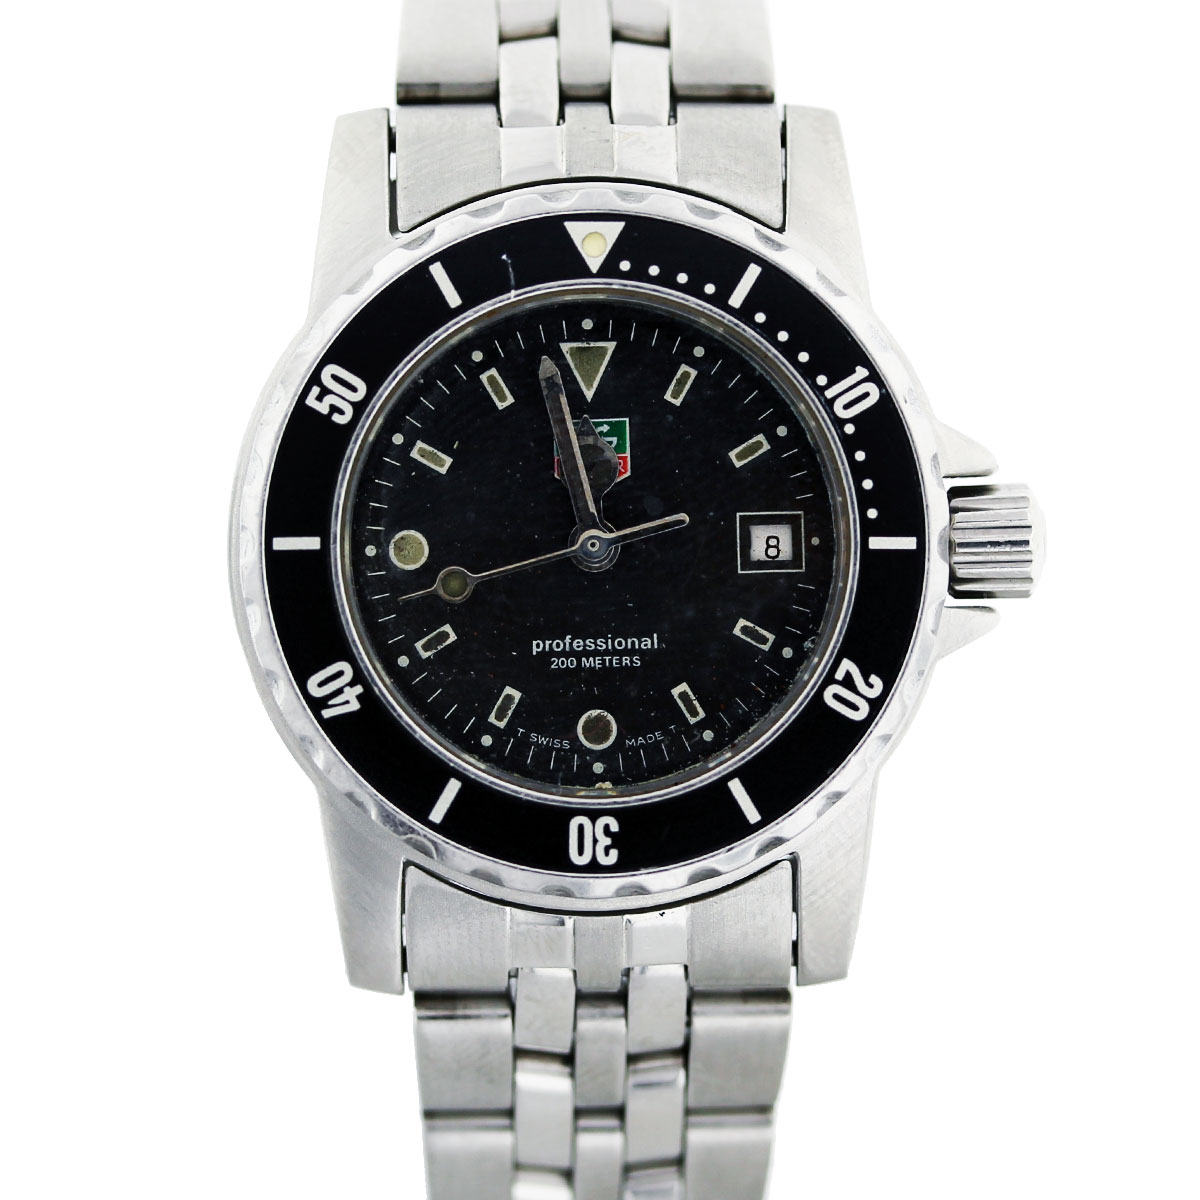 tag heuer professional wd1410 stainless steel ladies watch. Black Bedroom Furniture Sets. Home Design Ideas